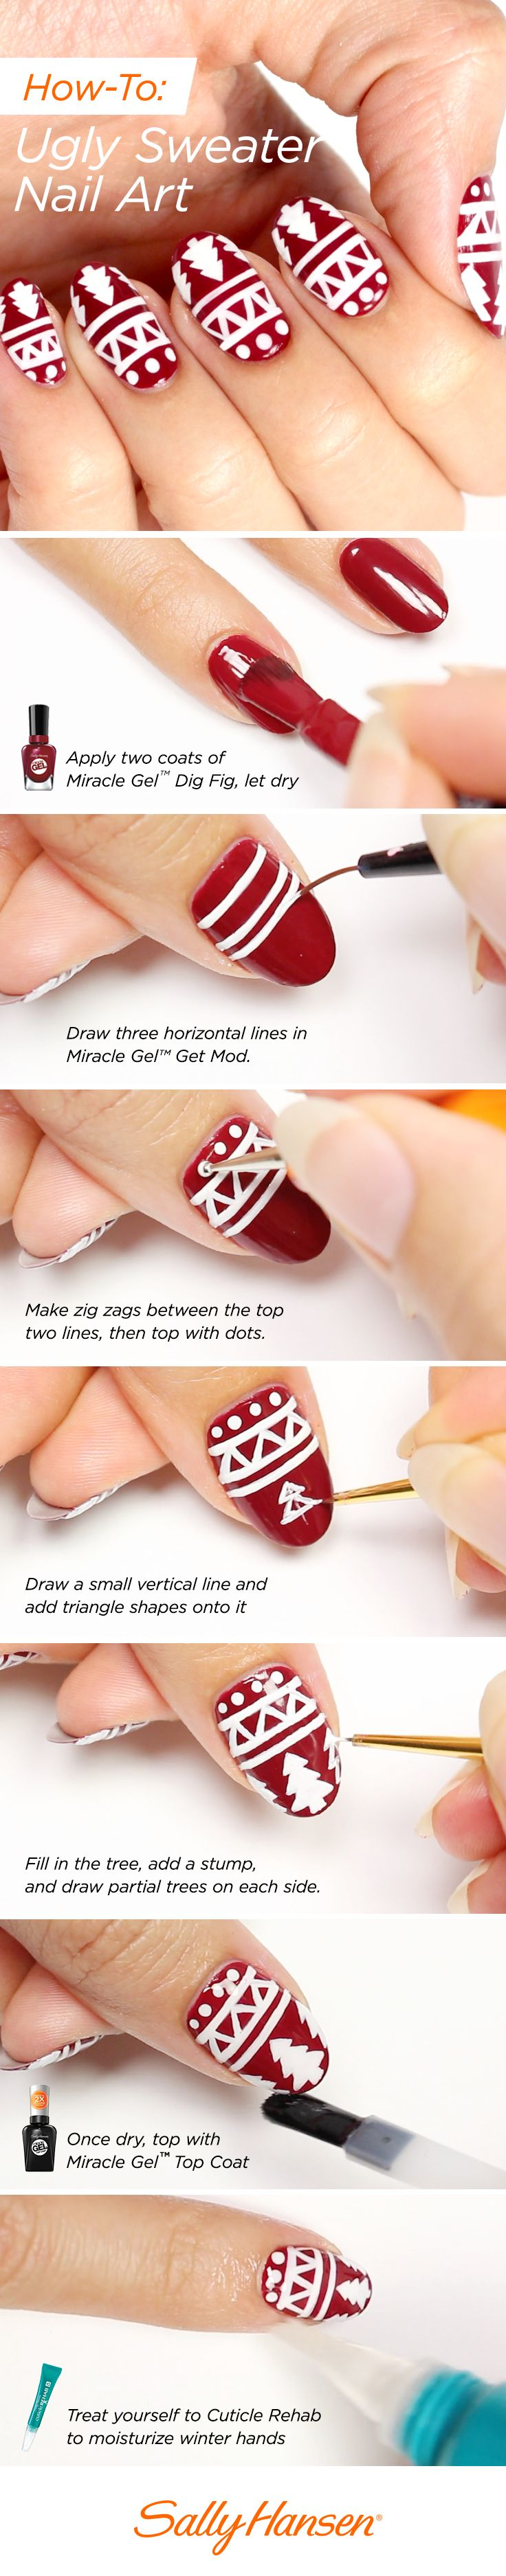 163 best omgel miracle gel images on pinterest nail nail gel follow hannah rox its easy steps to get cute ugly sweater inspired holiday nail art finish with miracle gel top coat for up to 14 days of chip resistant solutioingenieria Choice Image